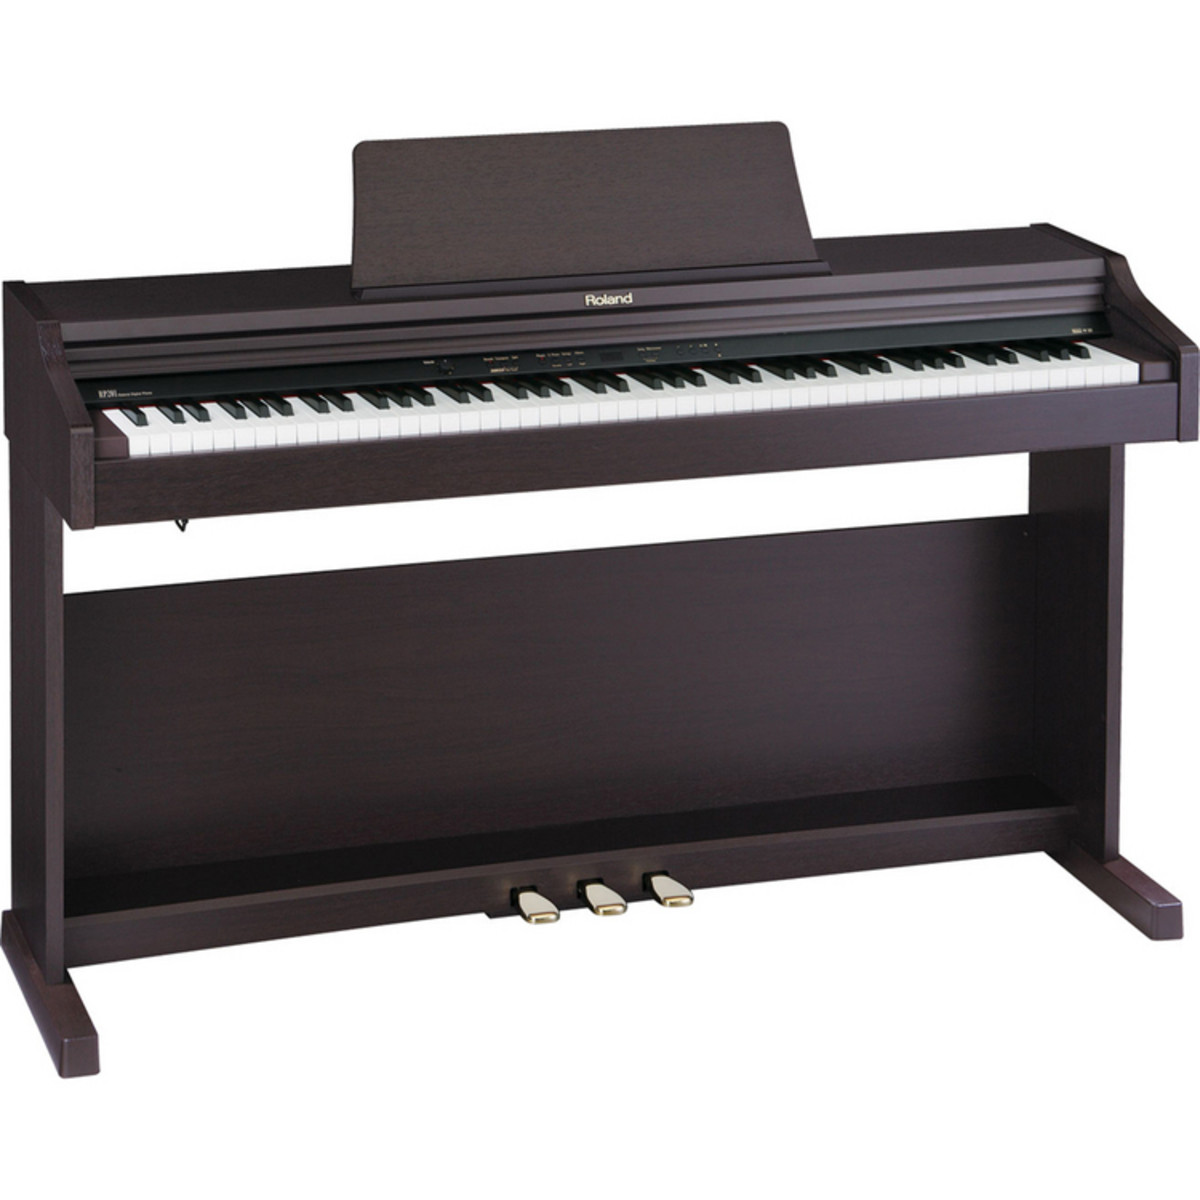 discontinued roland rp 201 digital piano rosewood at. Black Bedroom Furniture Sets. Home Design Ideas